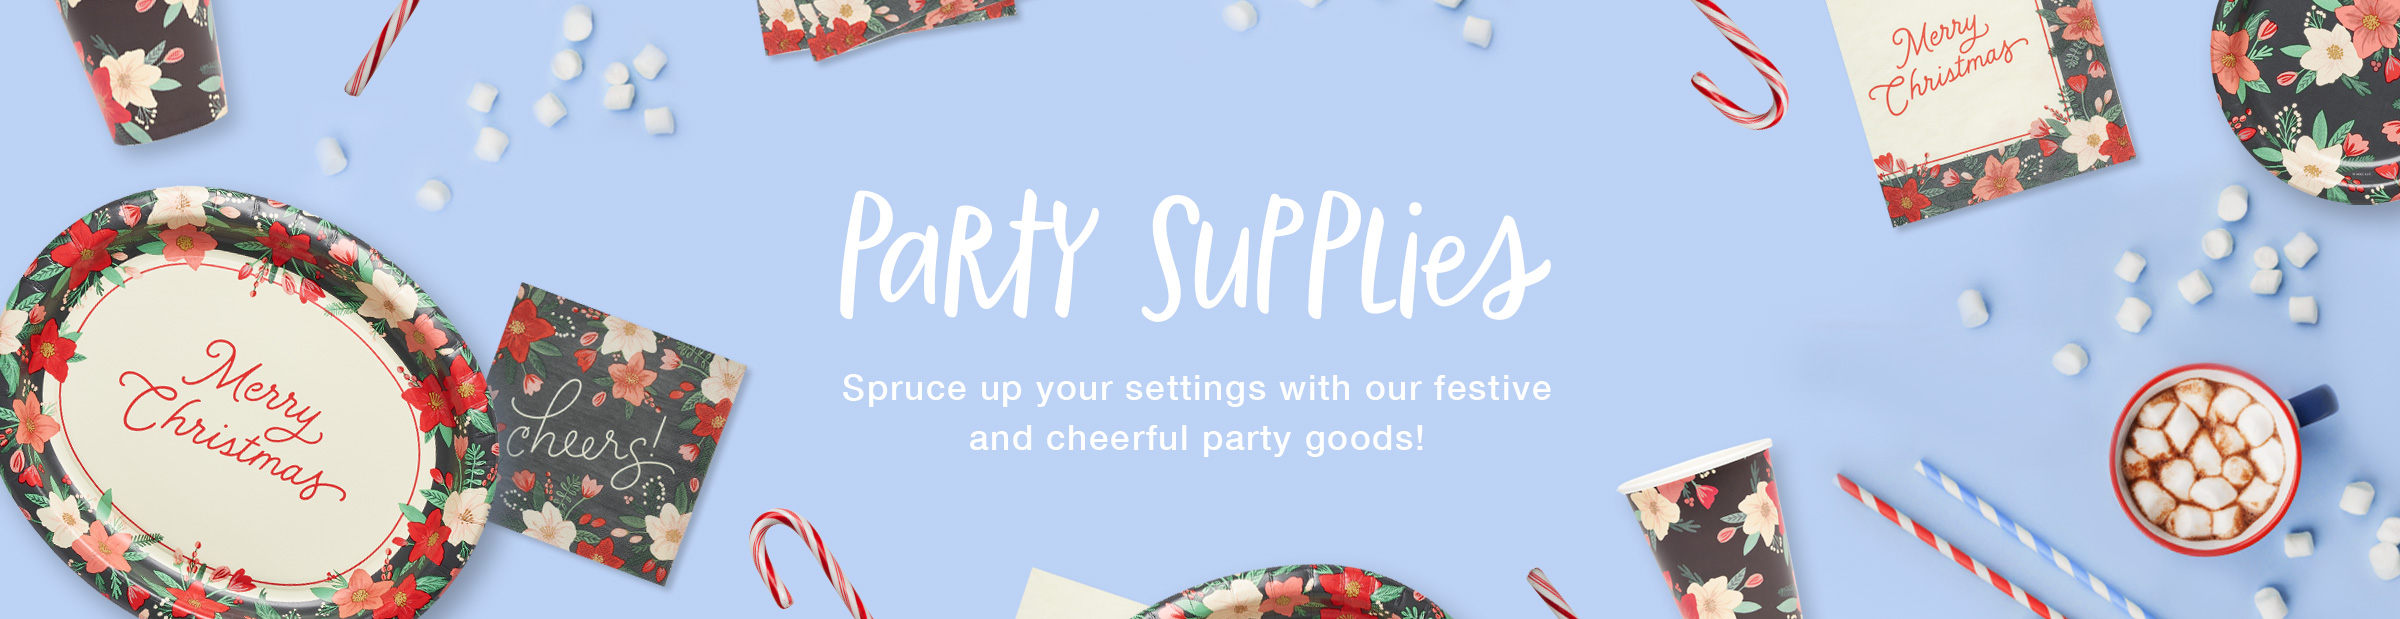 Party Supplies Christmas Banner